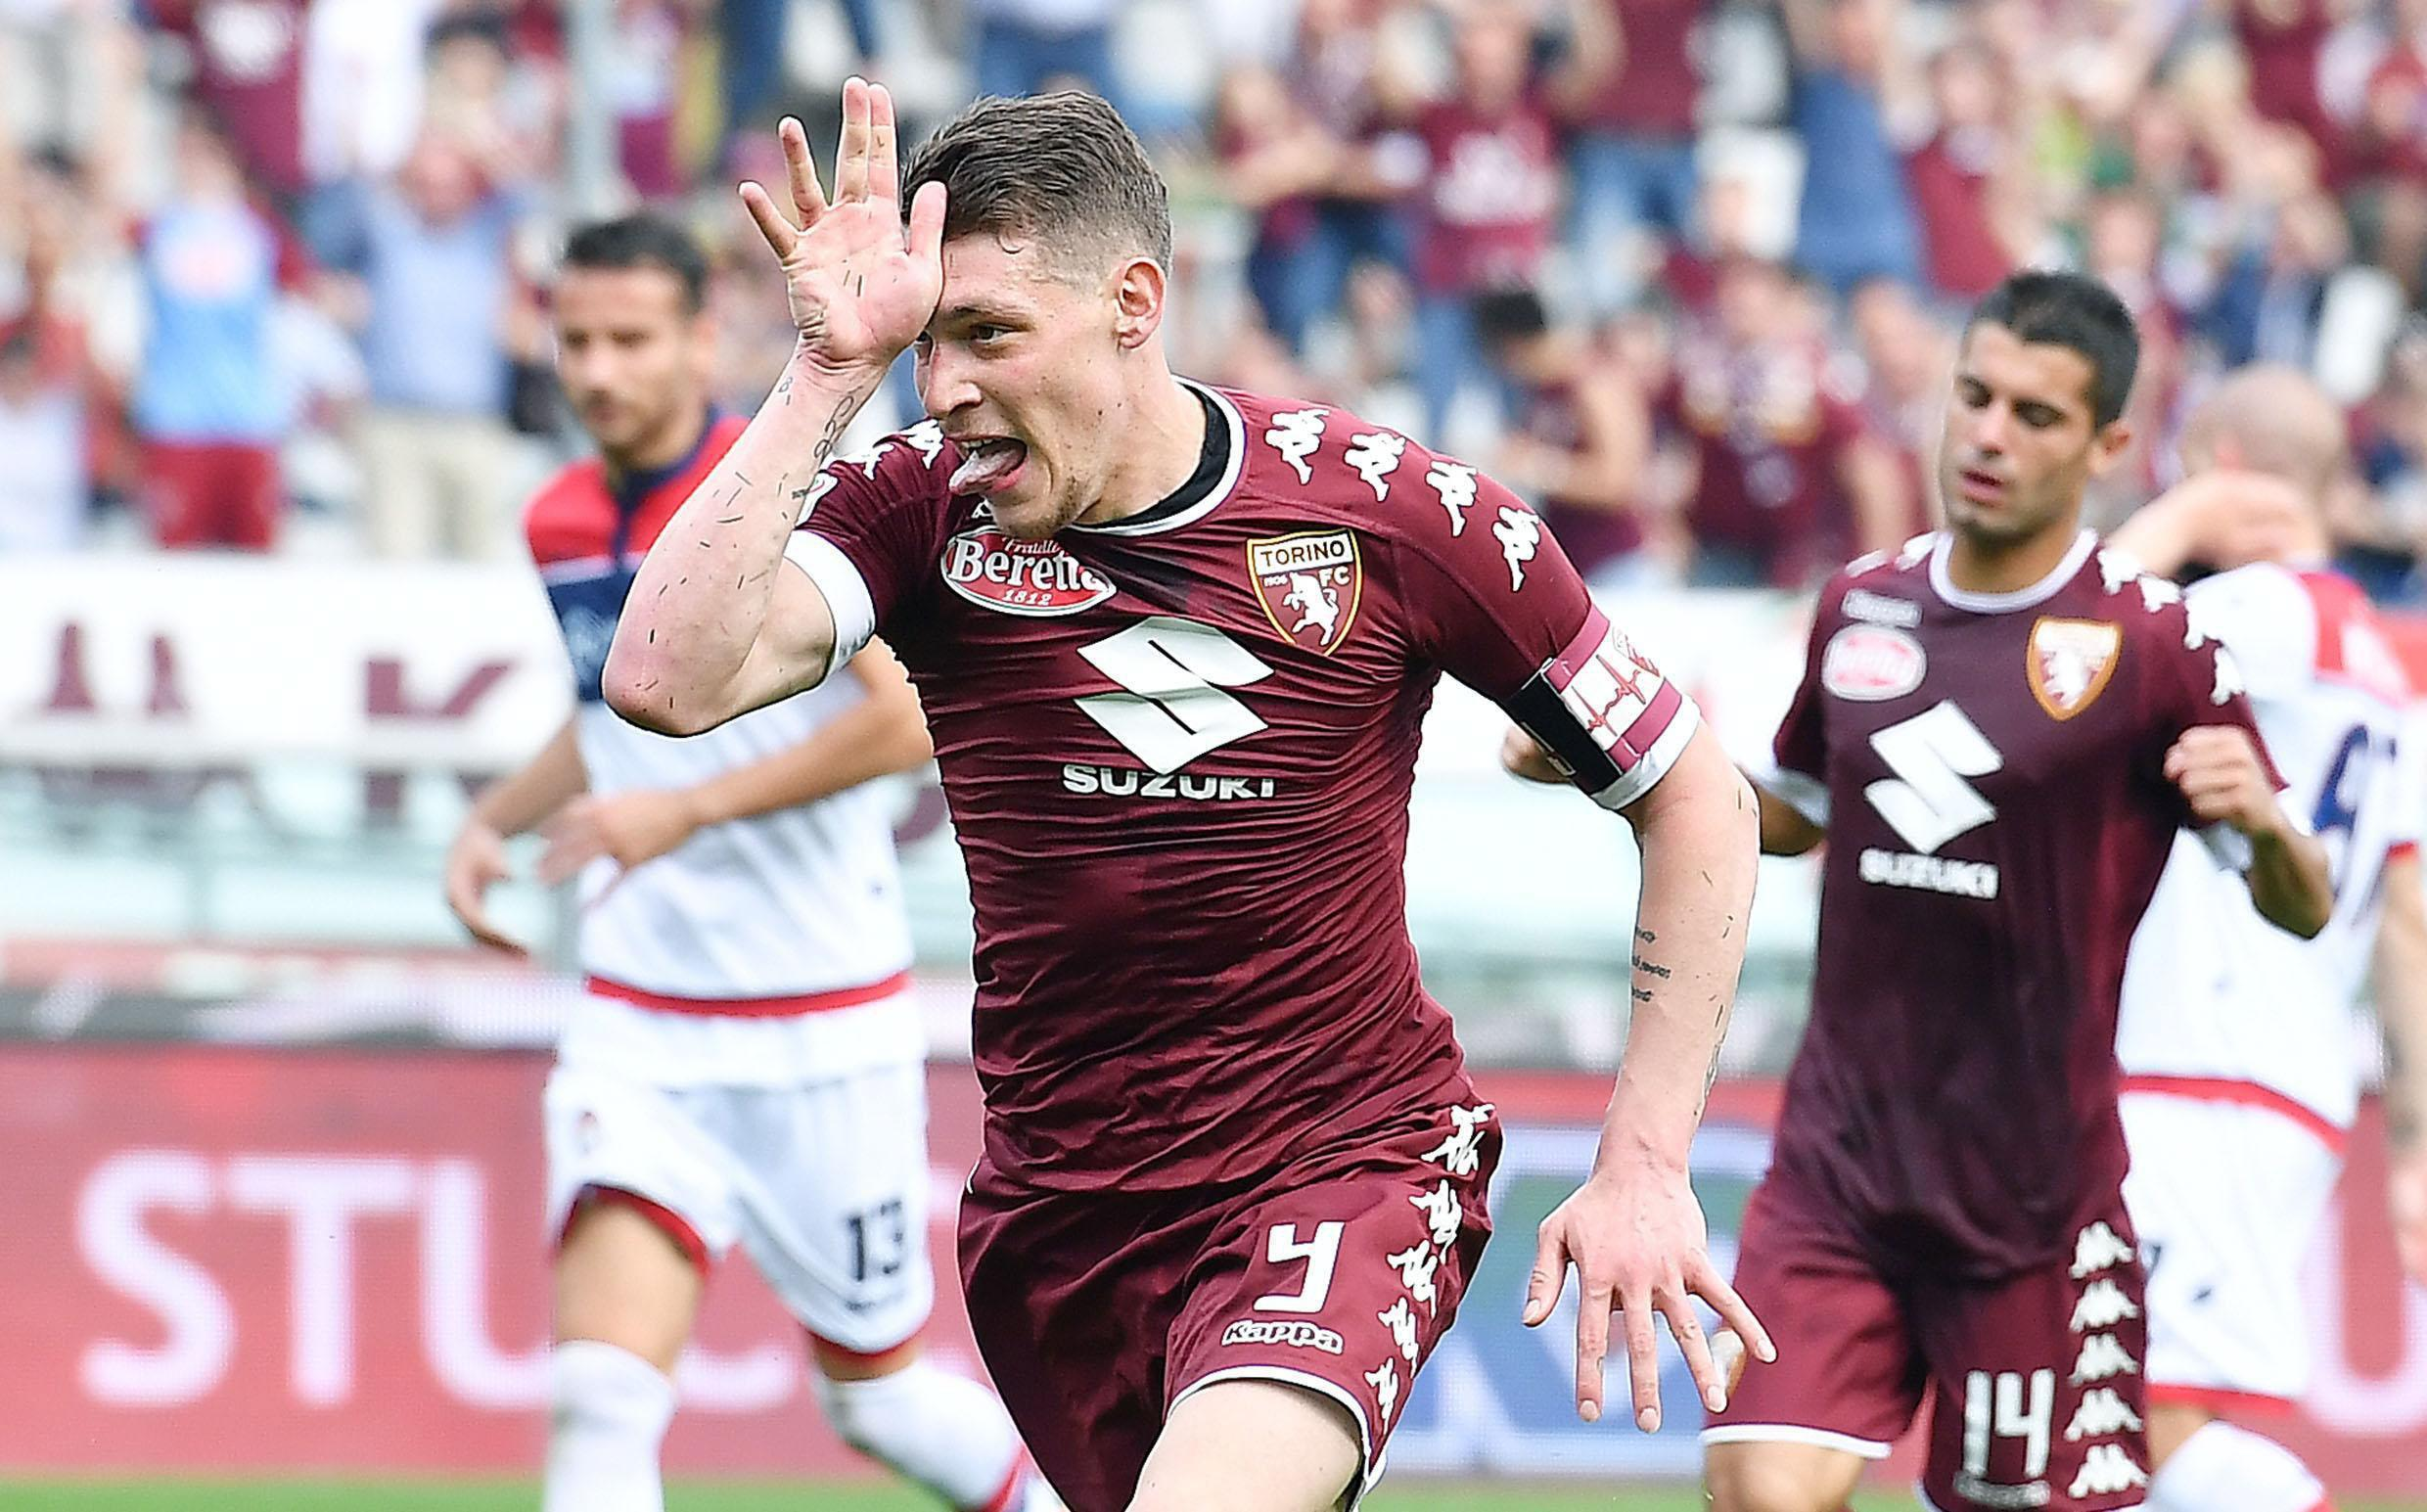 Andrea Belotti with his trademark celebration in Serie A for Torino